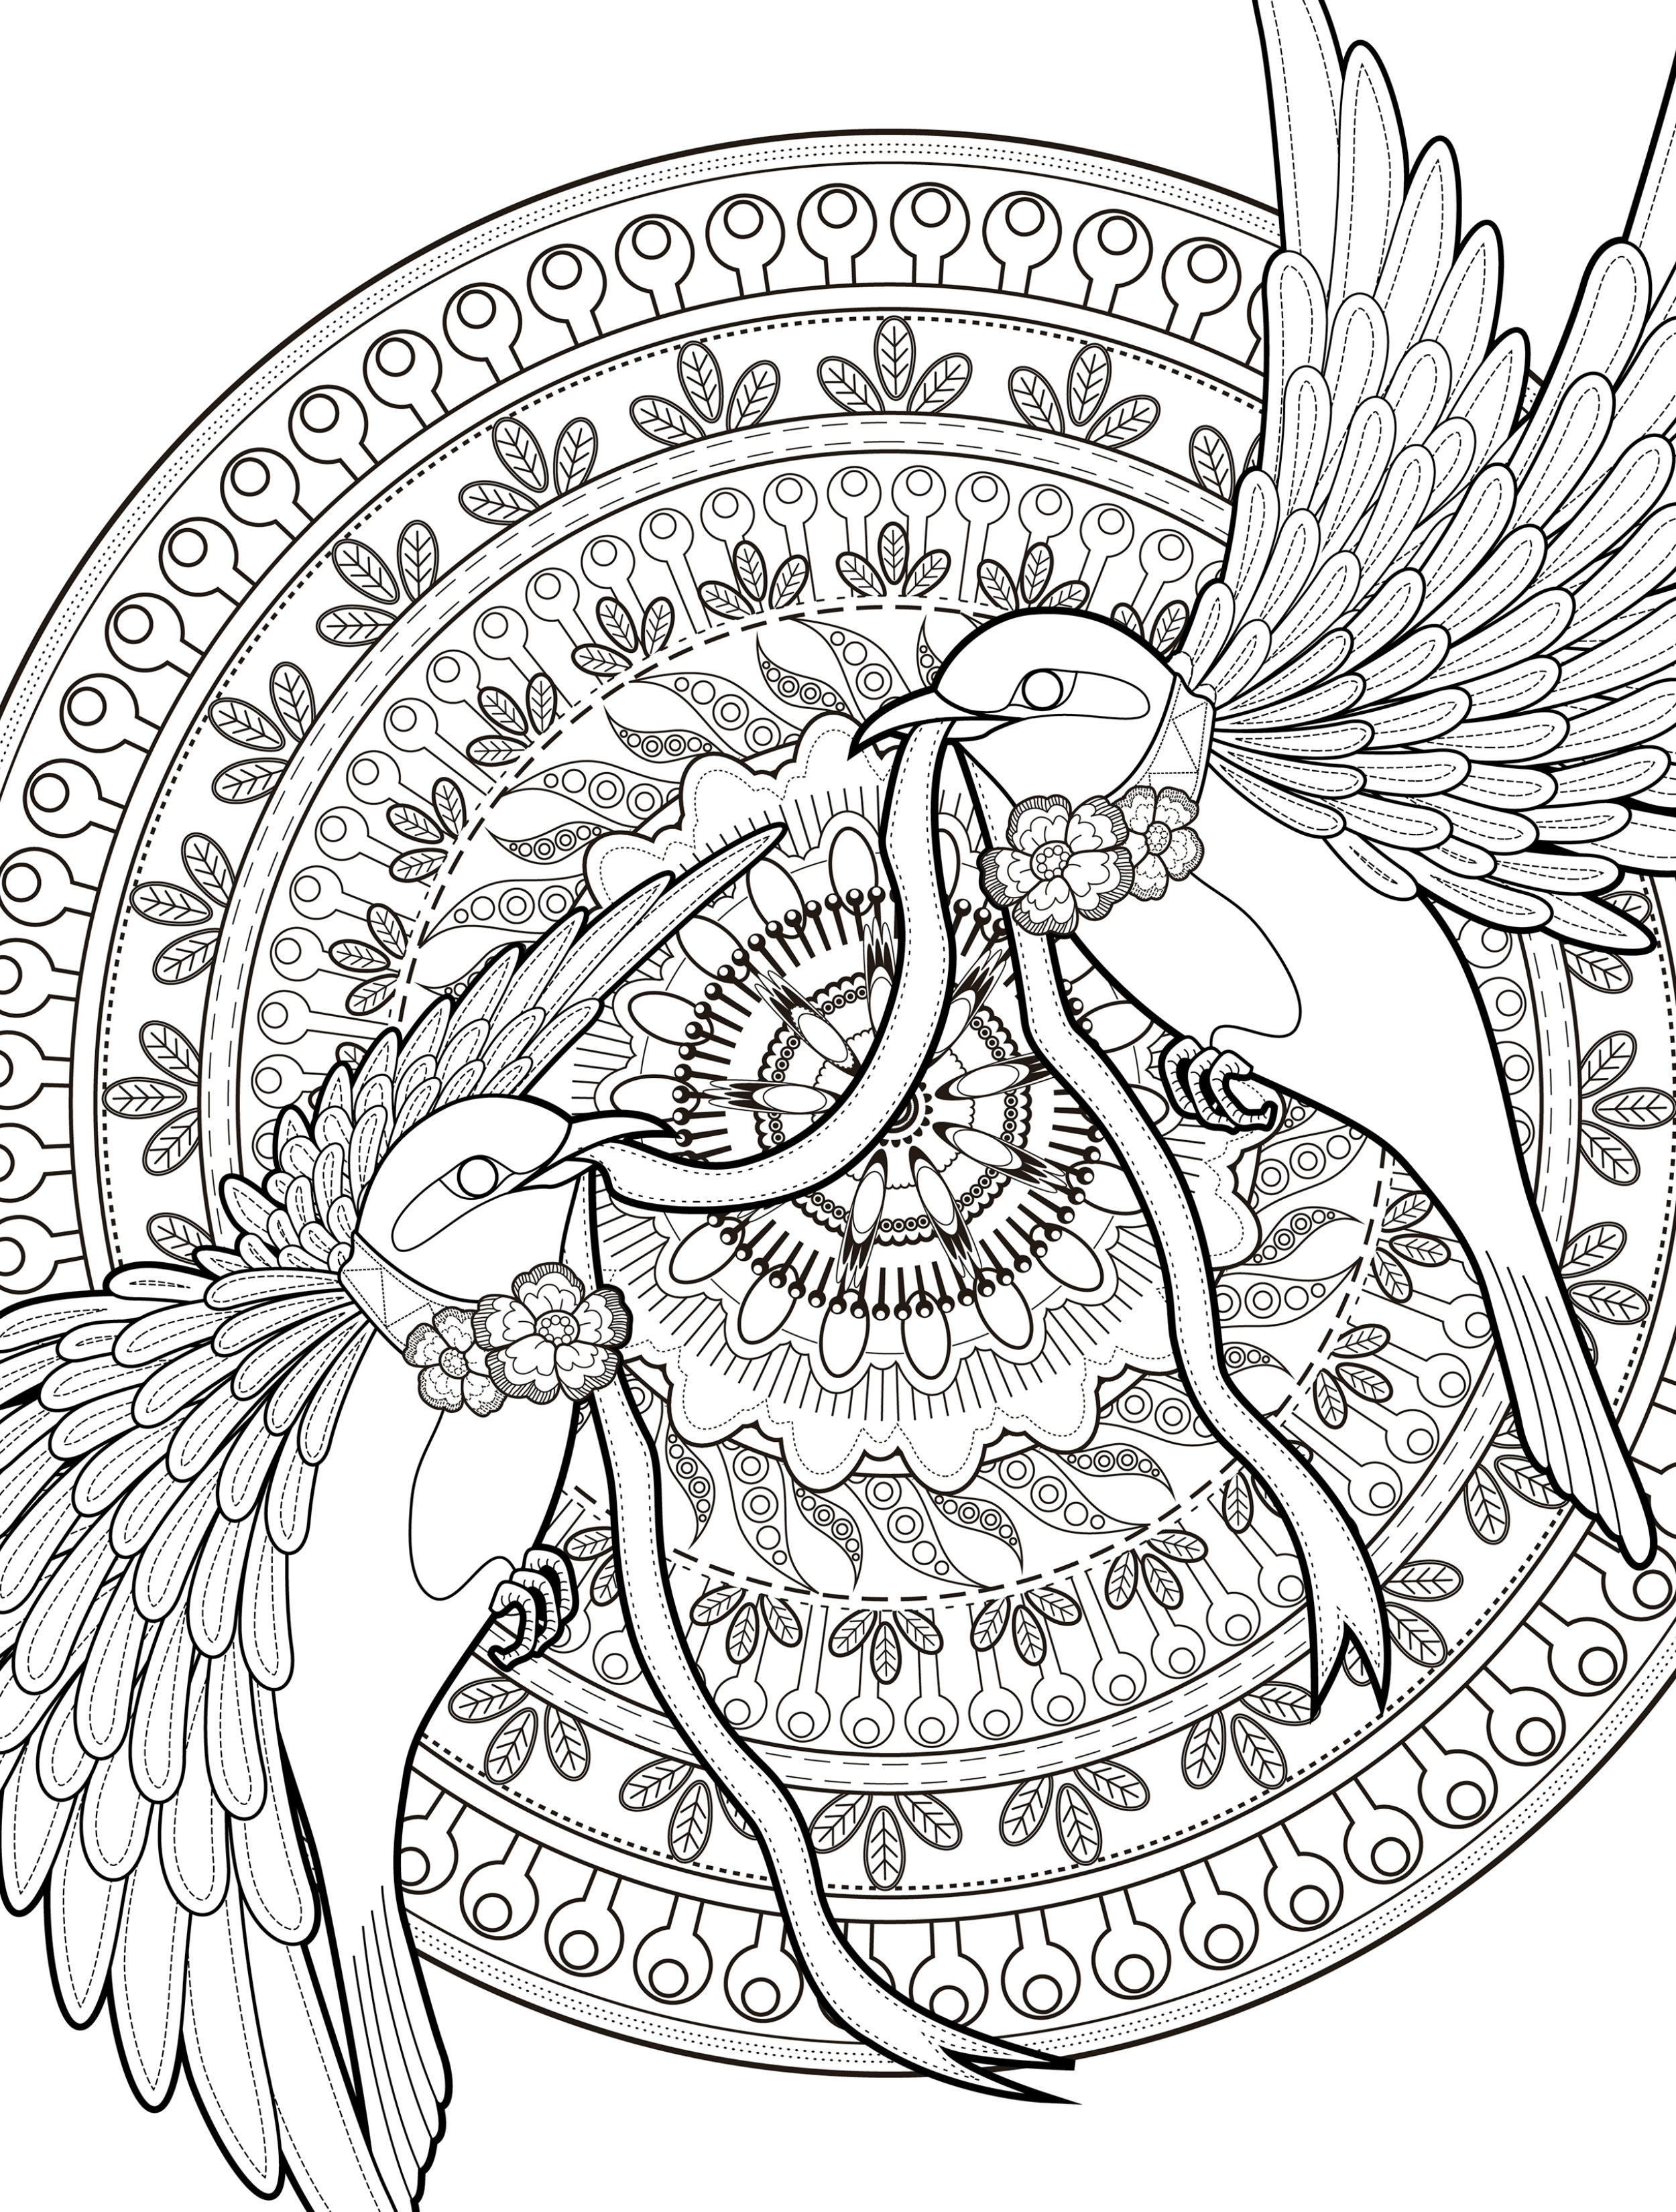 2500x3300 Bird Coloring Pages For Adults